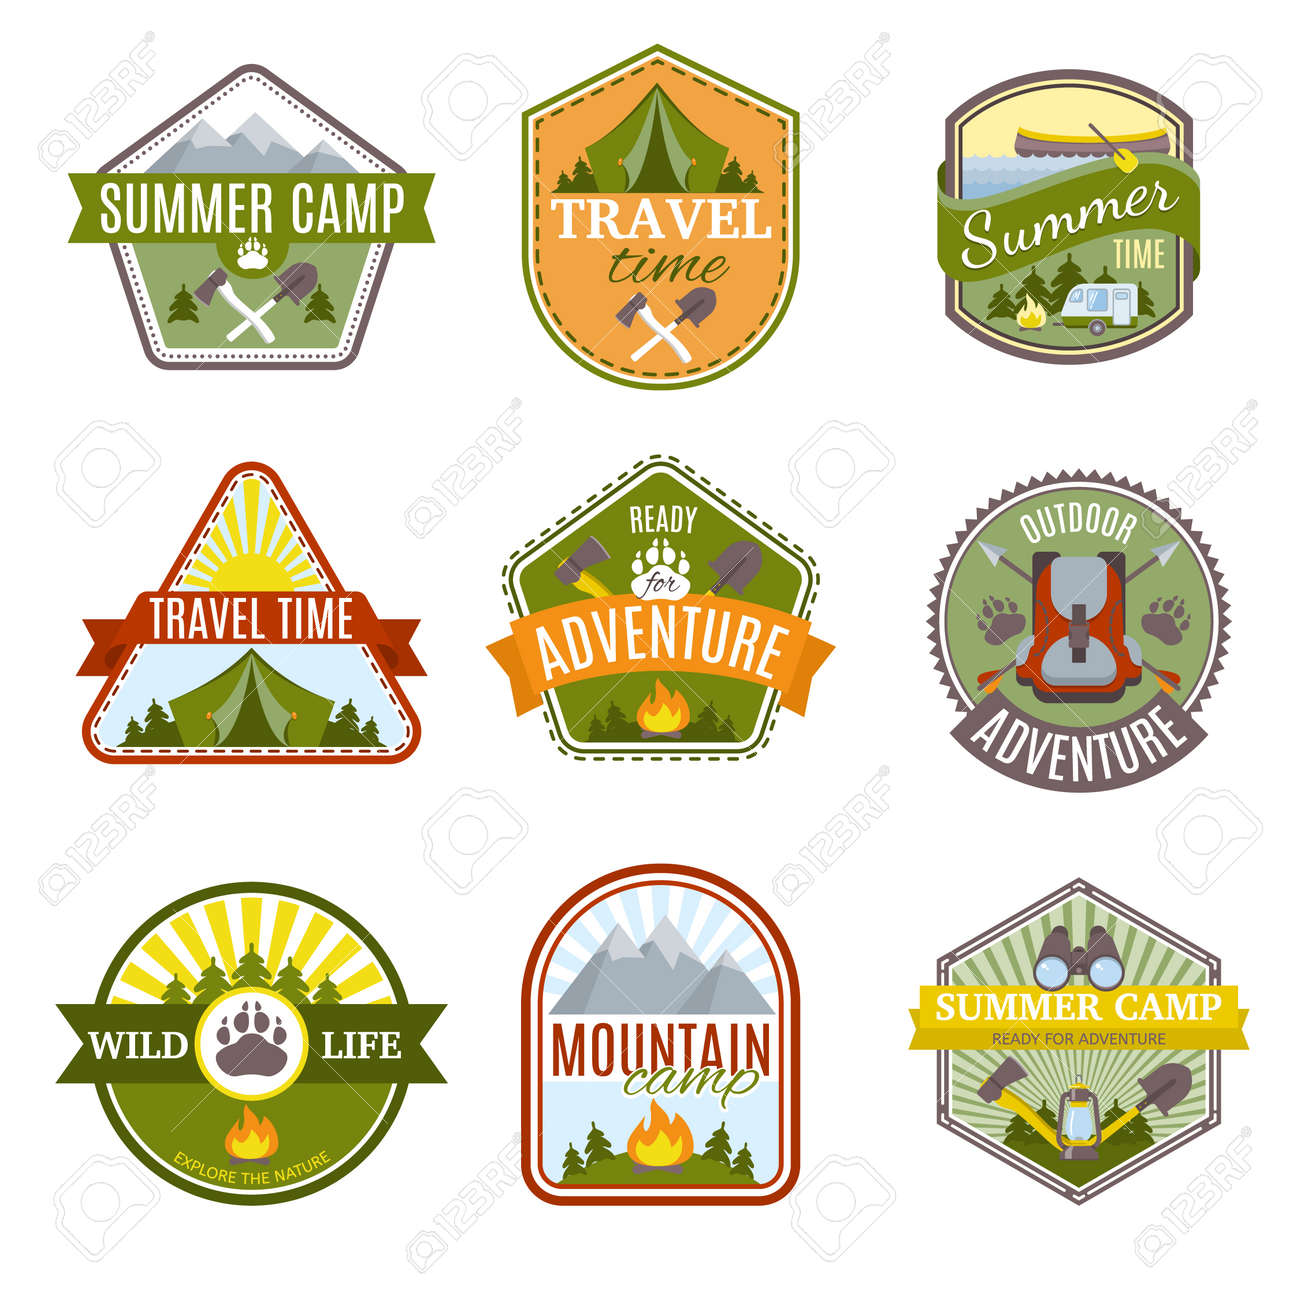 Camping Icon Set with different types of hiking colored isolated emblems in different shapes vector illustration - 166650476